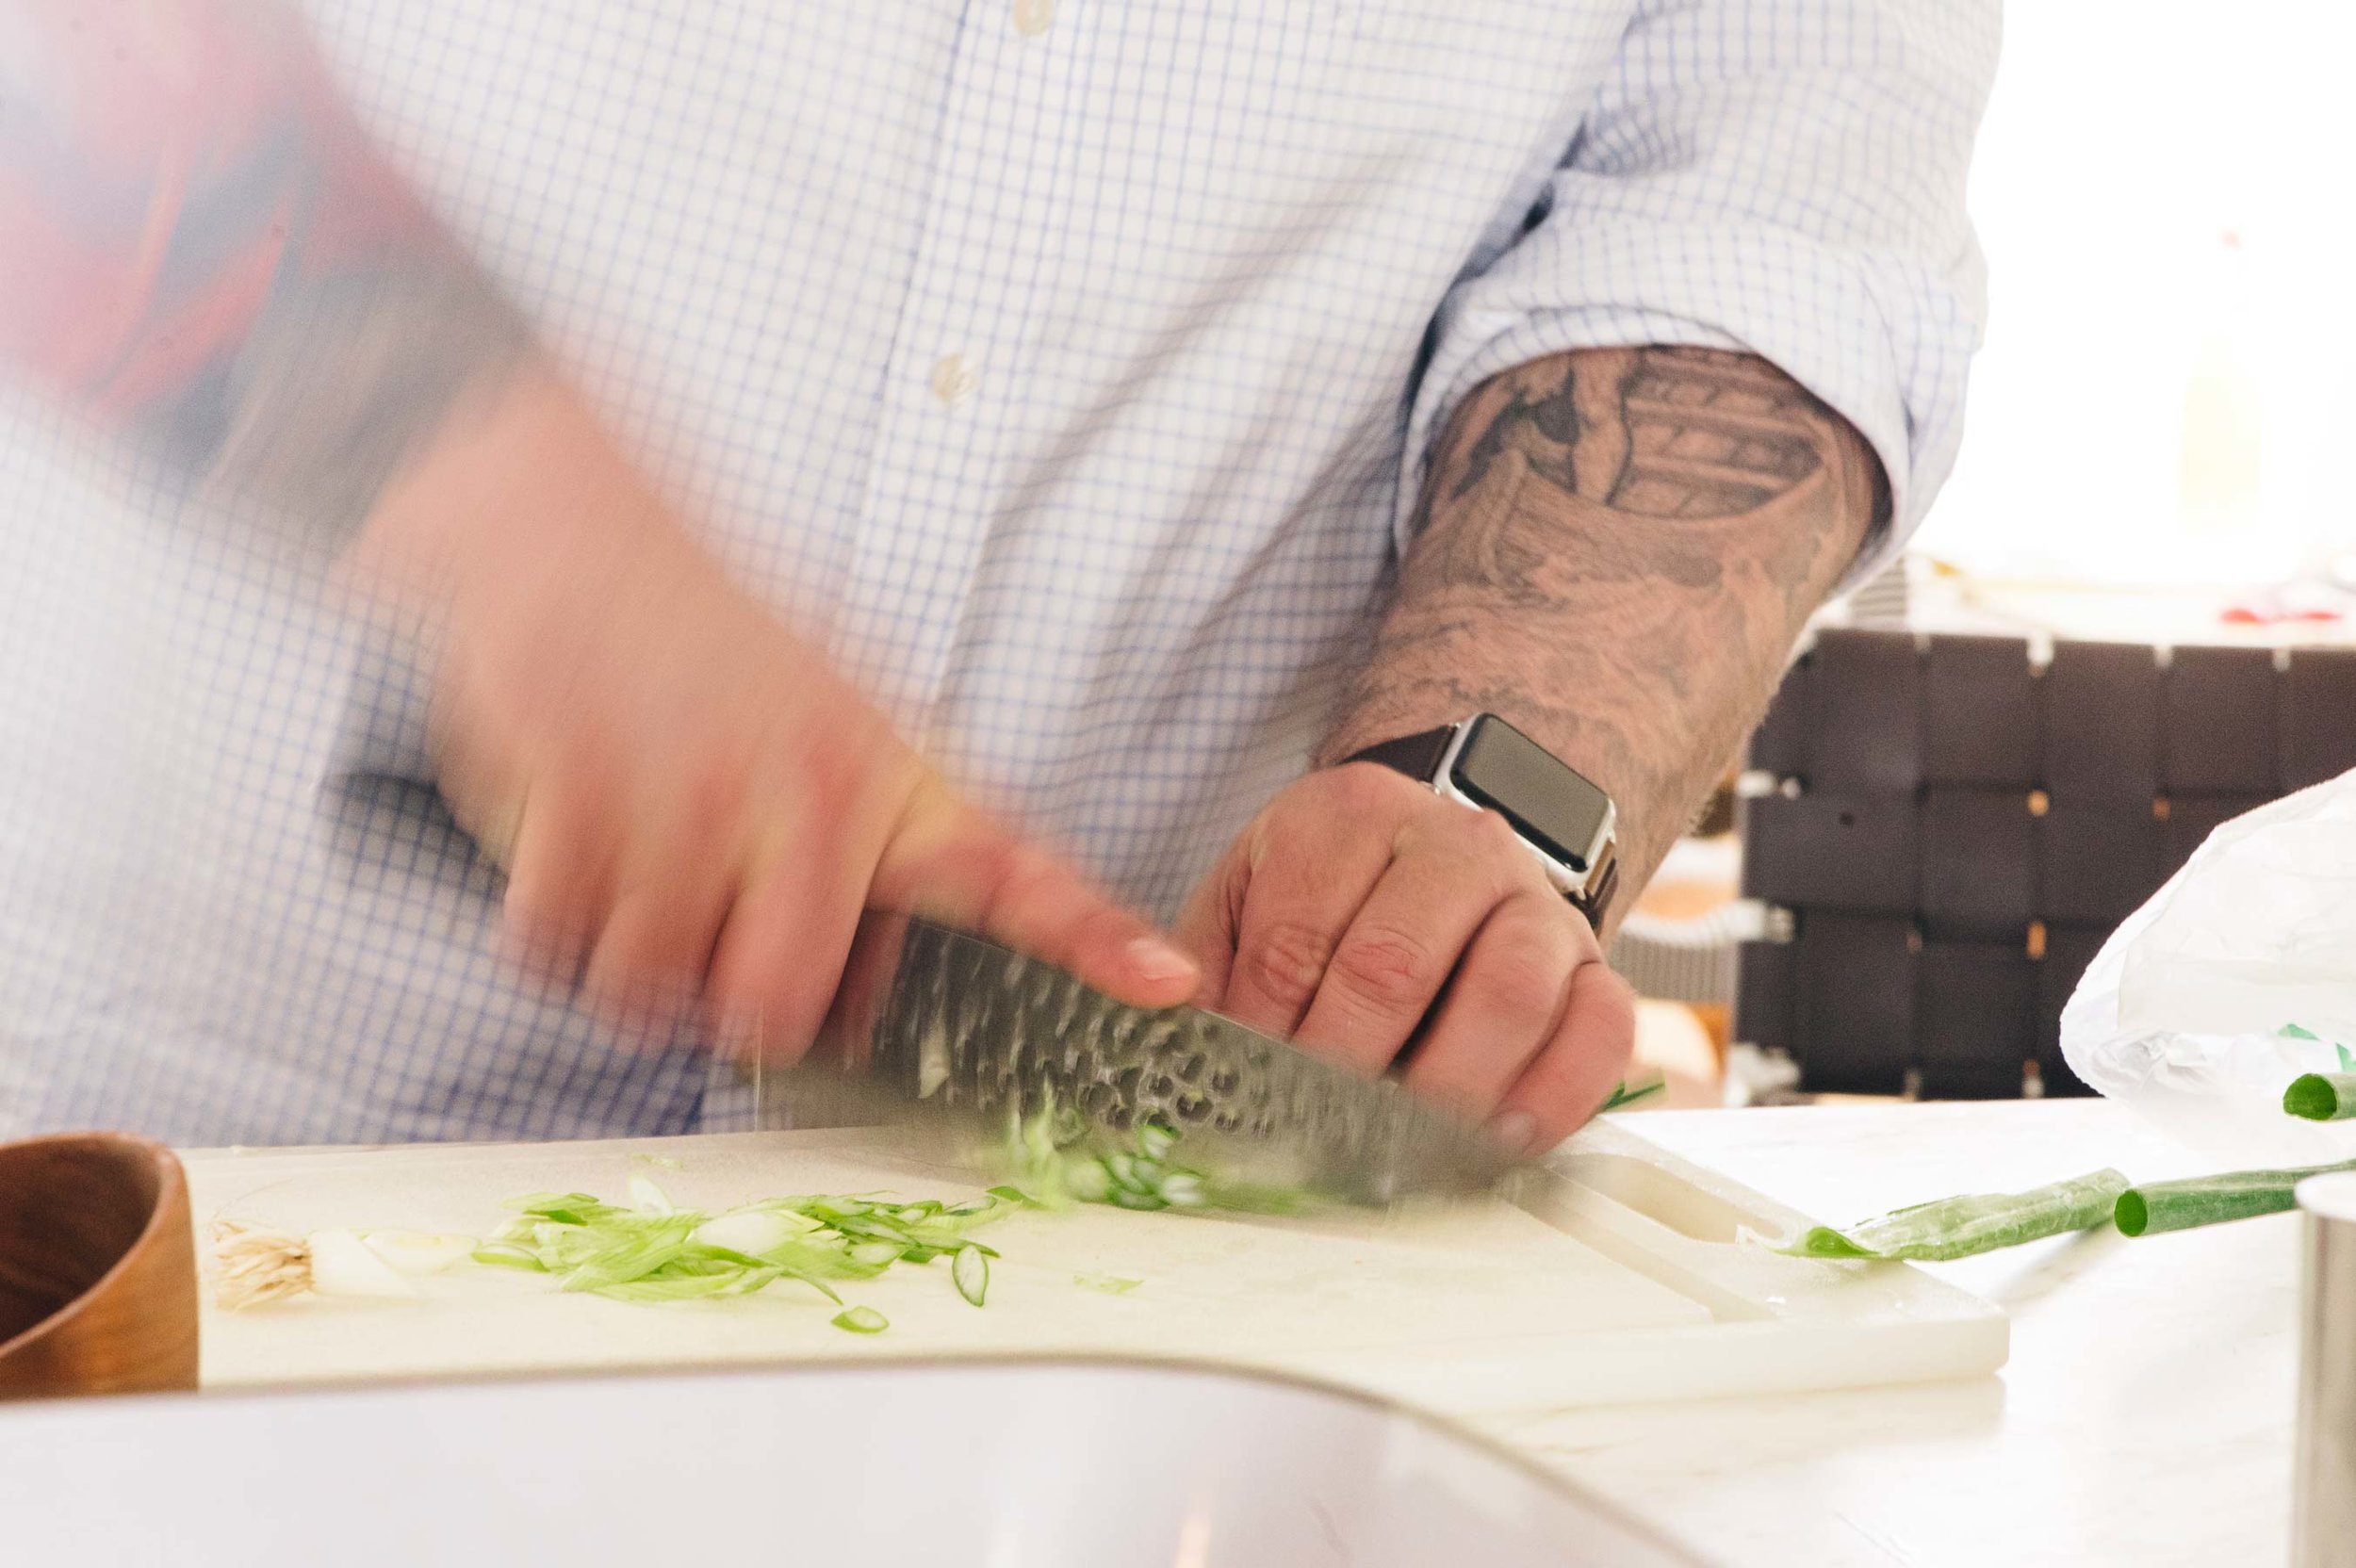 I am comfortable with your criticism of the way I chop scallions. This is not an instructional knife skills feature.